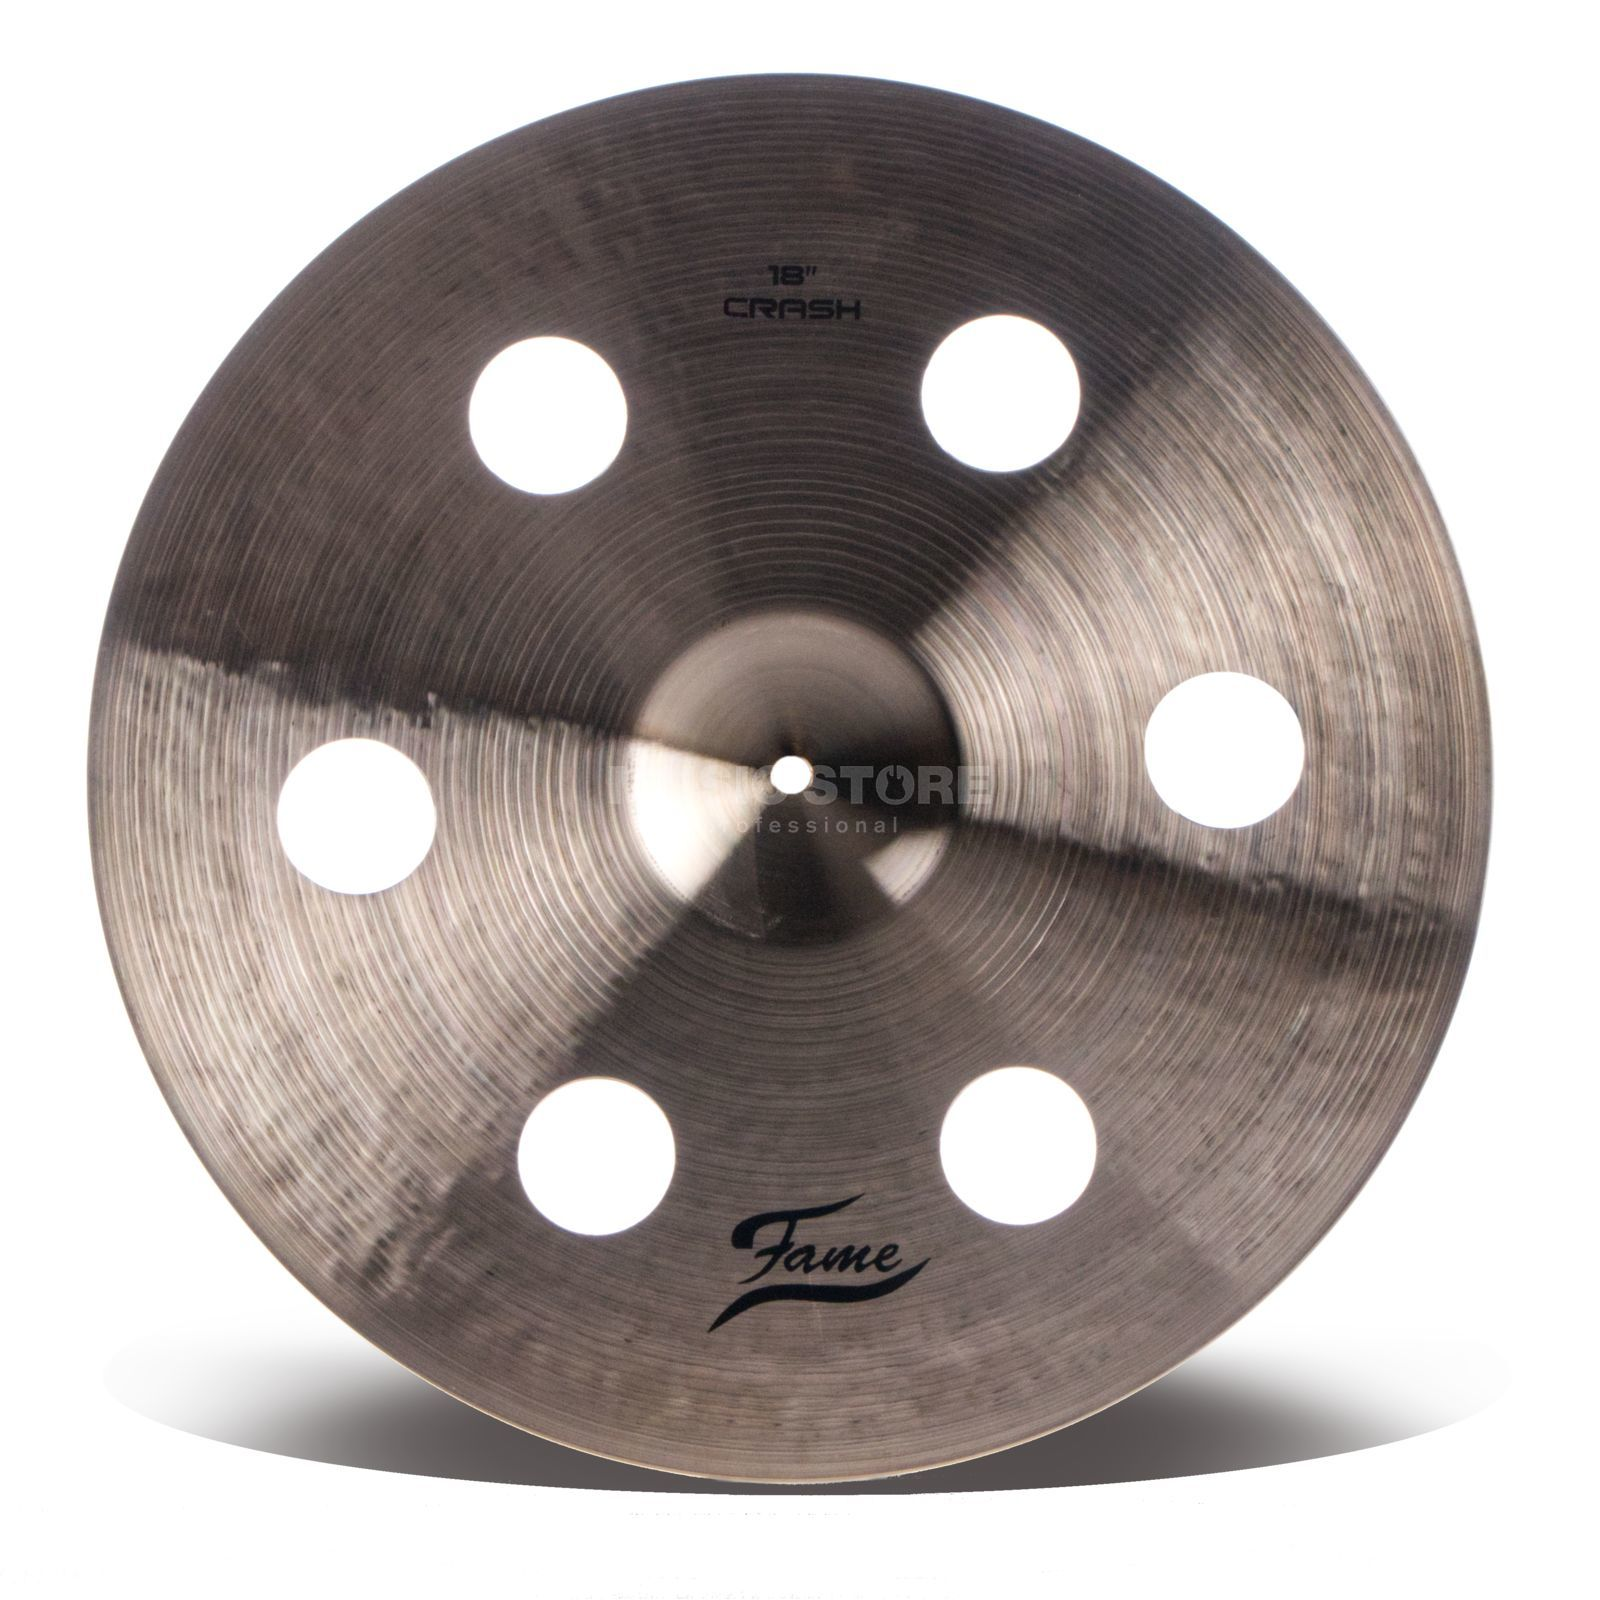 "Fame Masters B20 Holey Crash 18"" Natural Finish Produktbild"